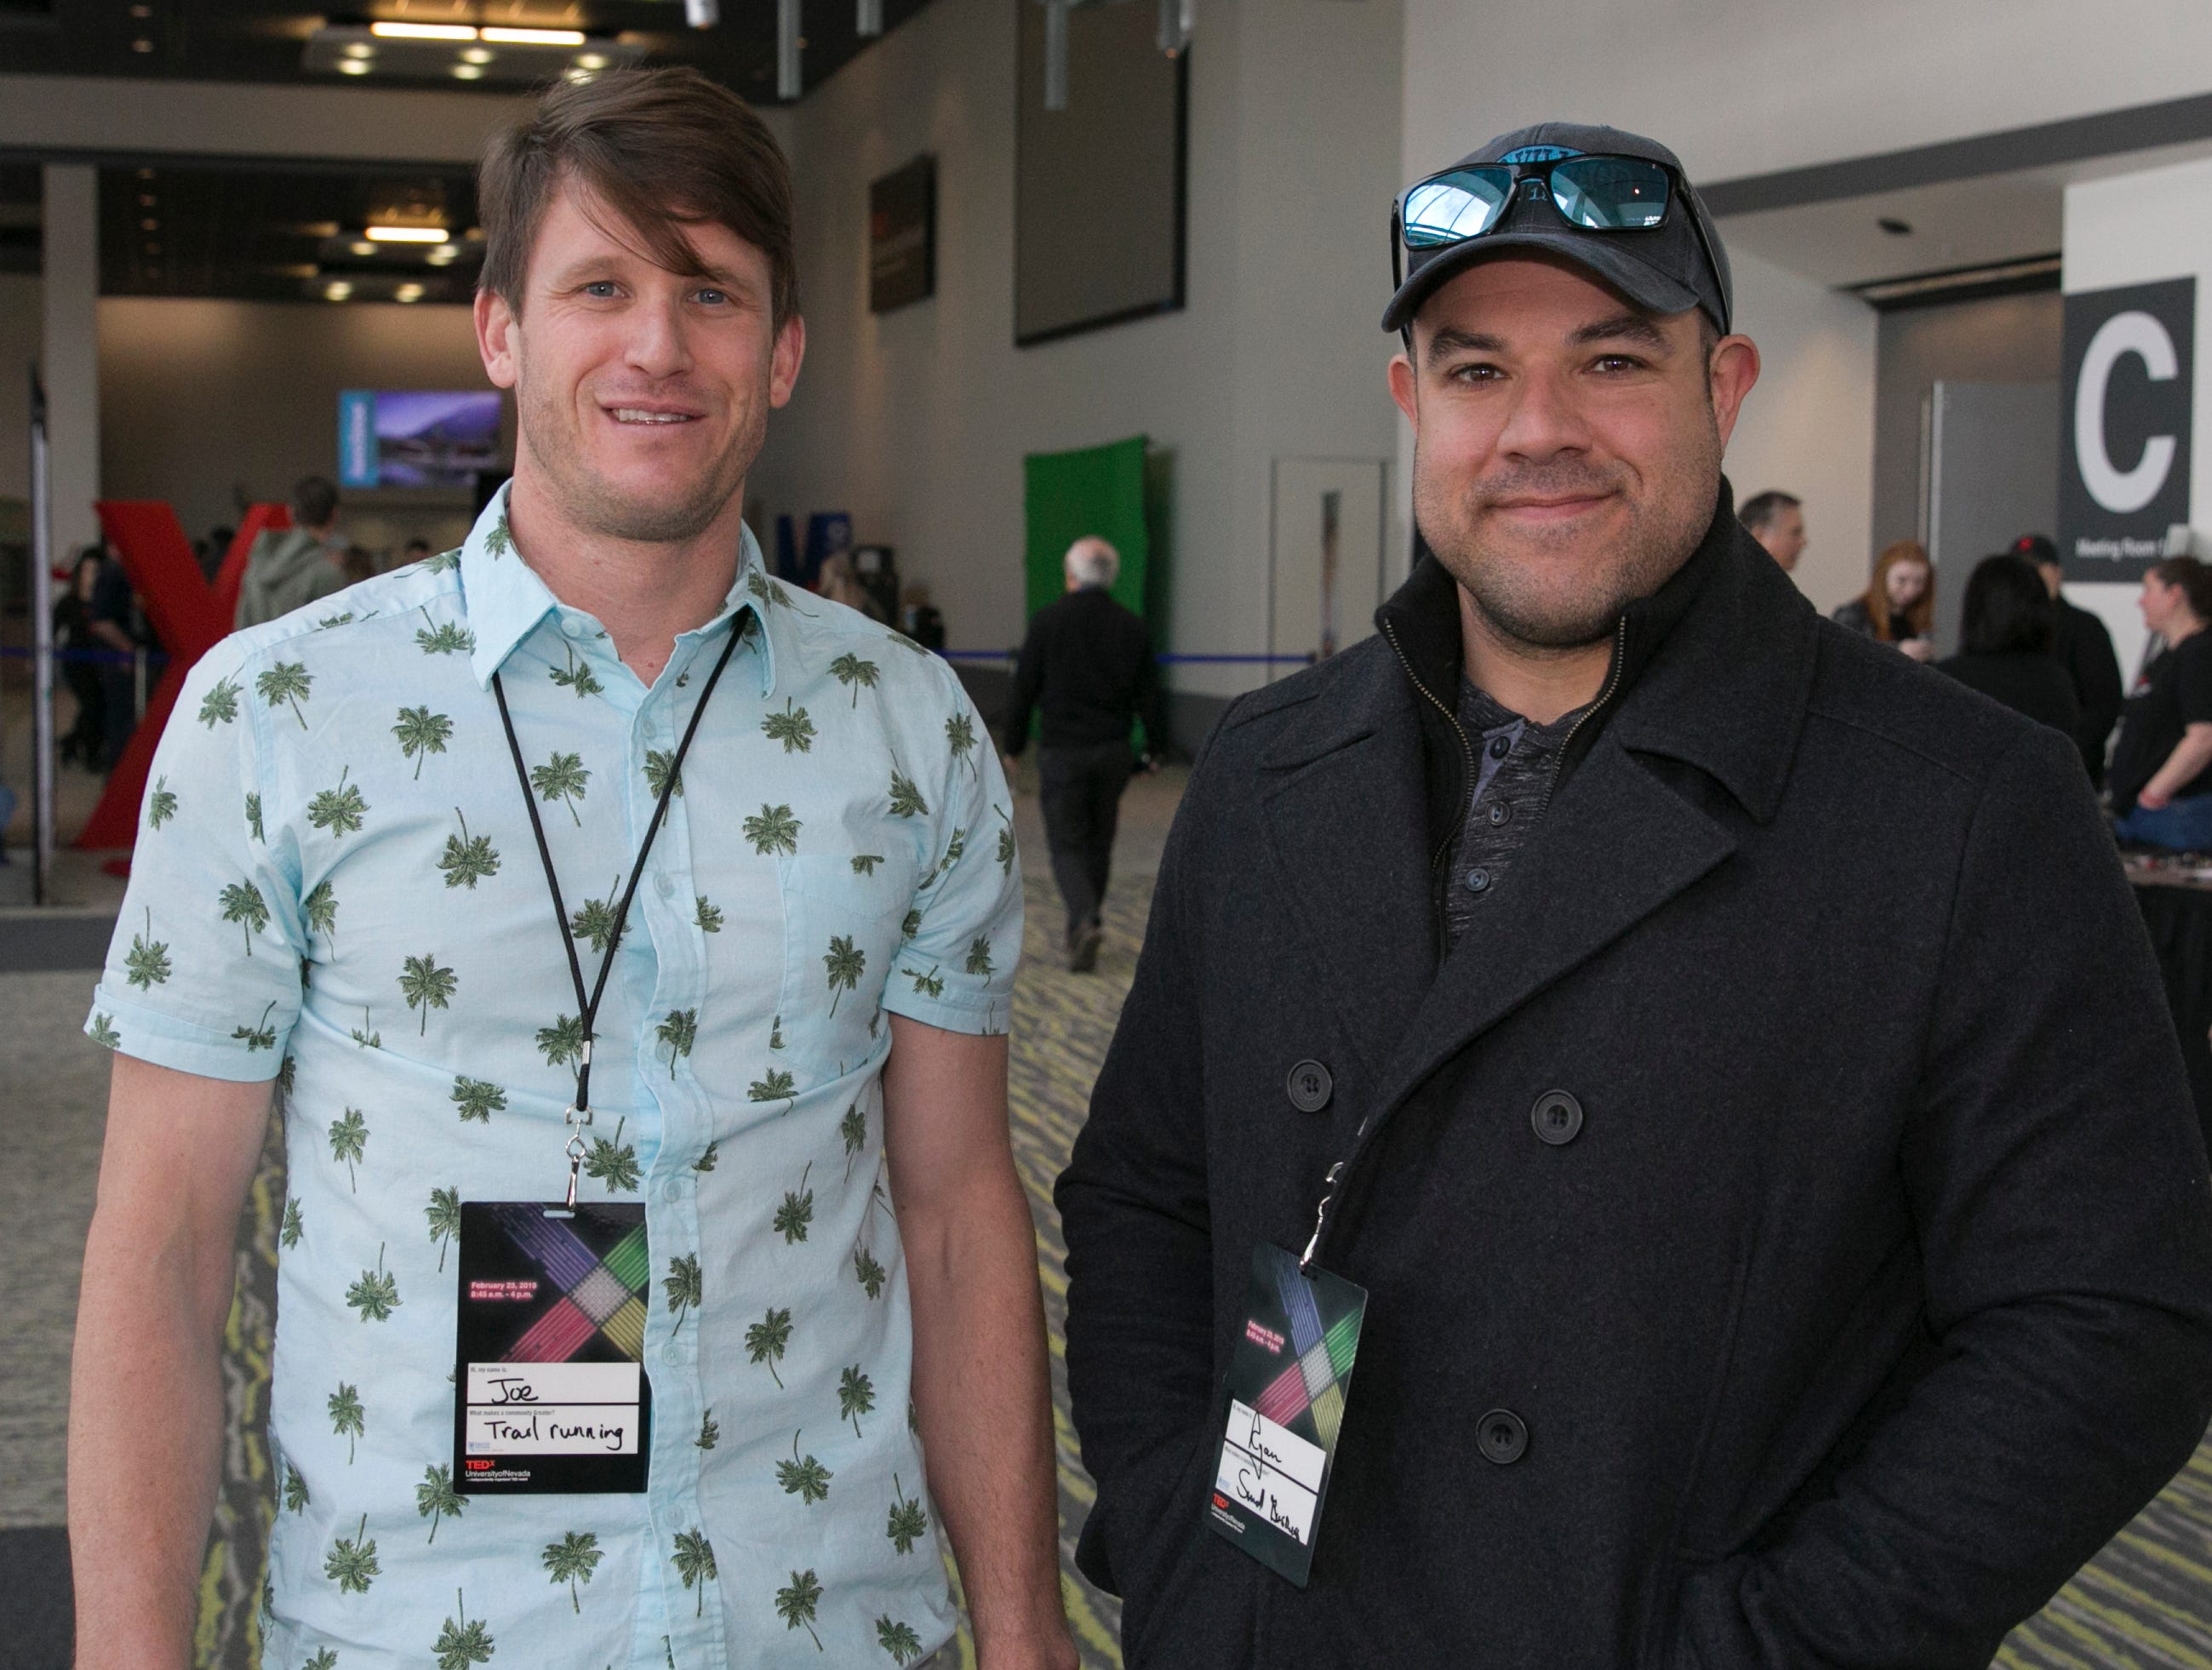 Joe Toth and Ryan Osborn during TEDx University of Nevada 2019 at the Reno-Sparks Convention Center on Saturday, Feb. 23, 2019.